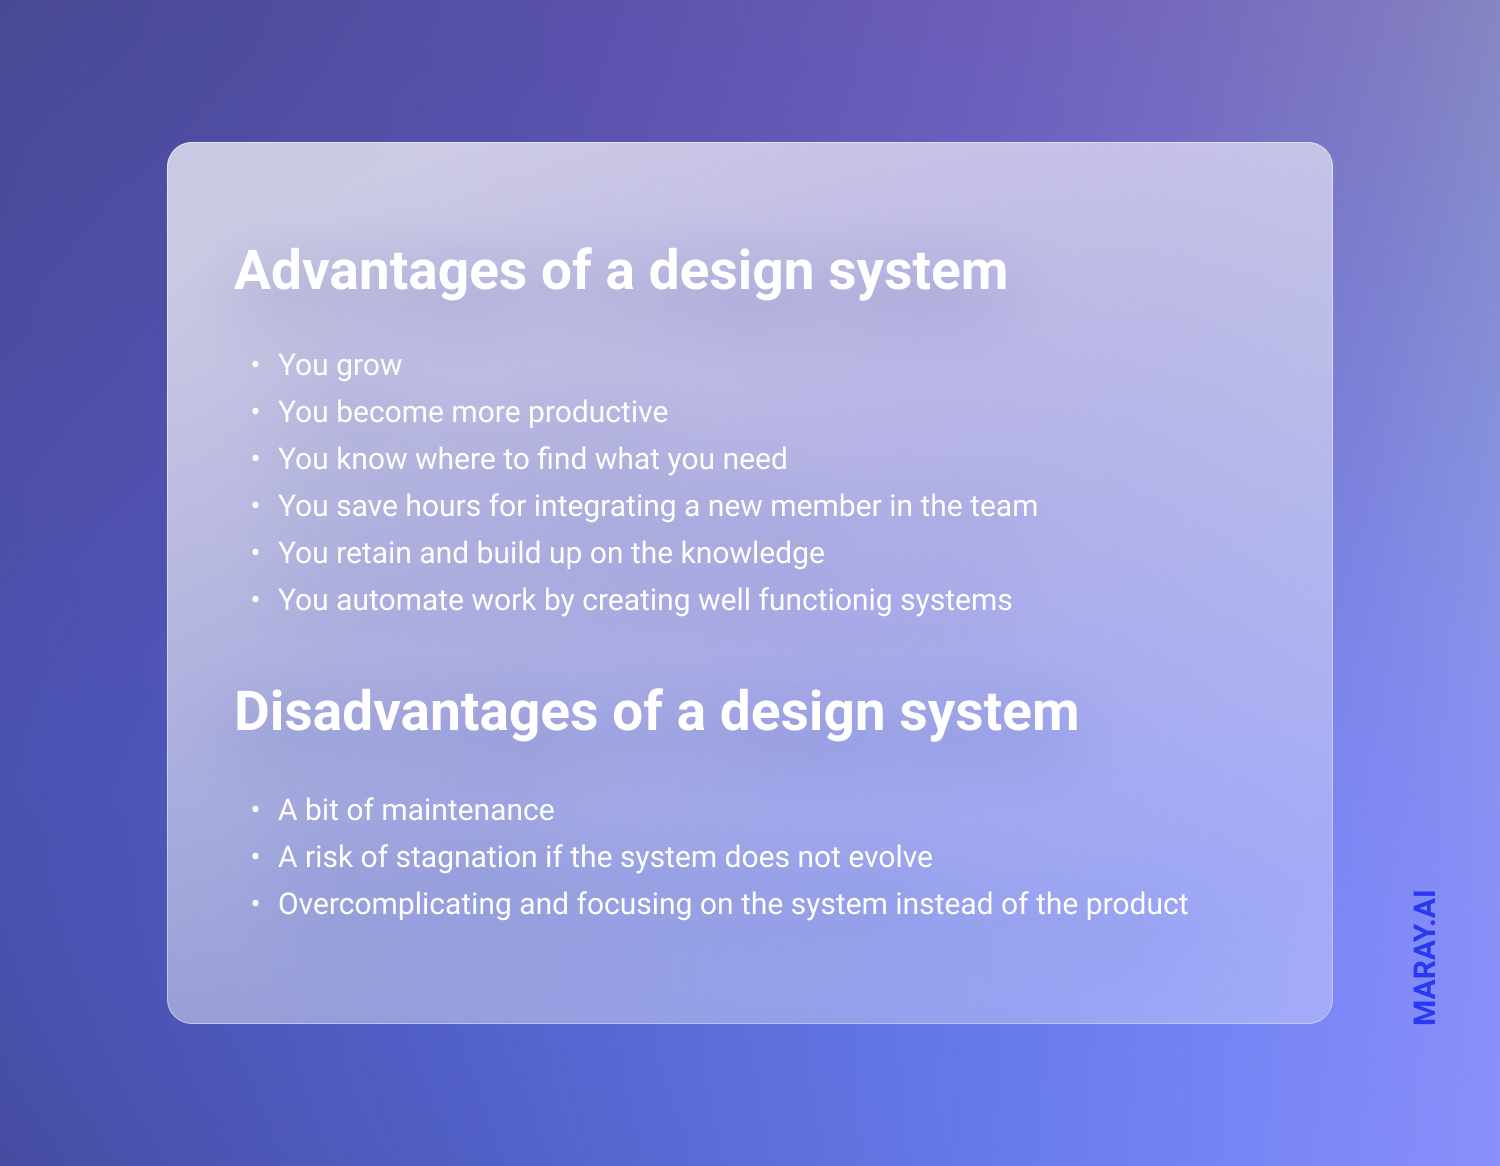 Advantages and disadvantages of a design system. You get a lot of benefits for your effort.